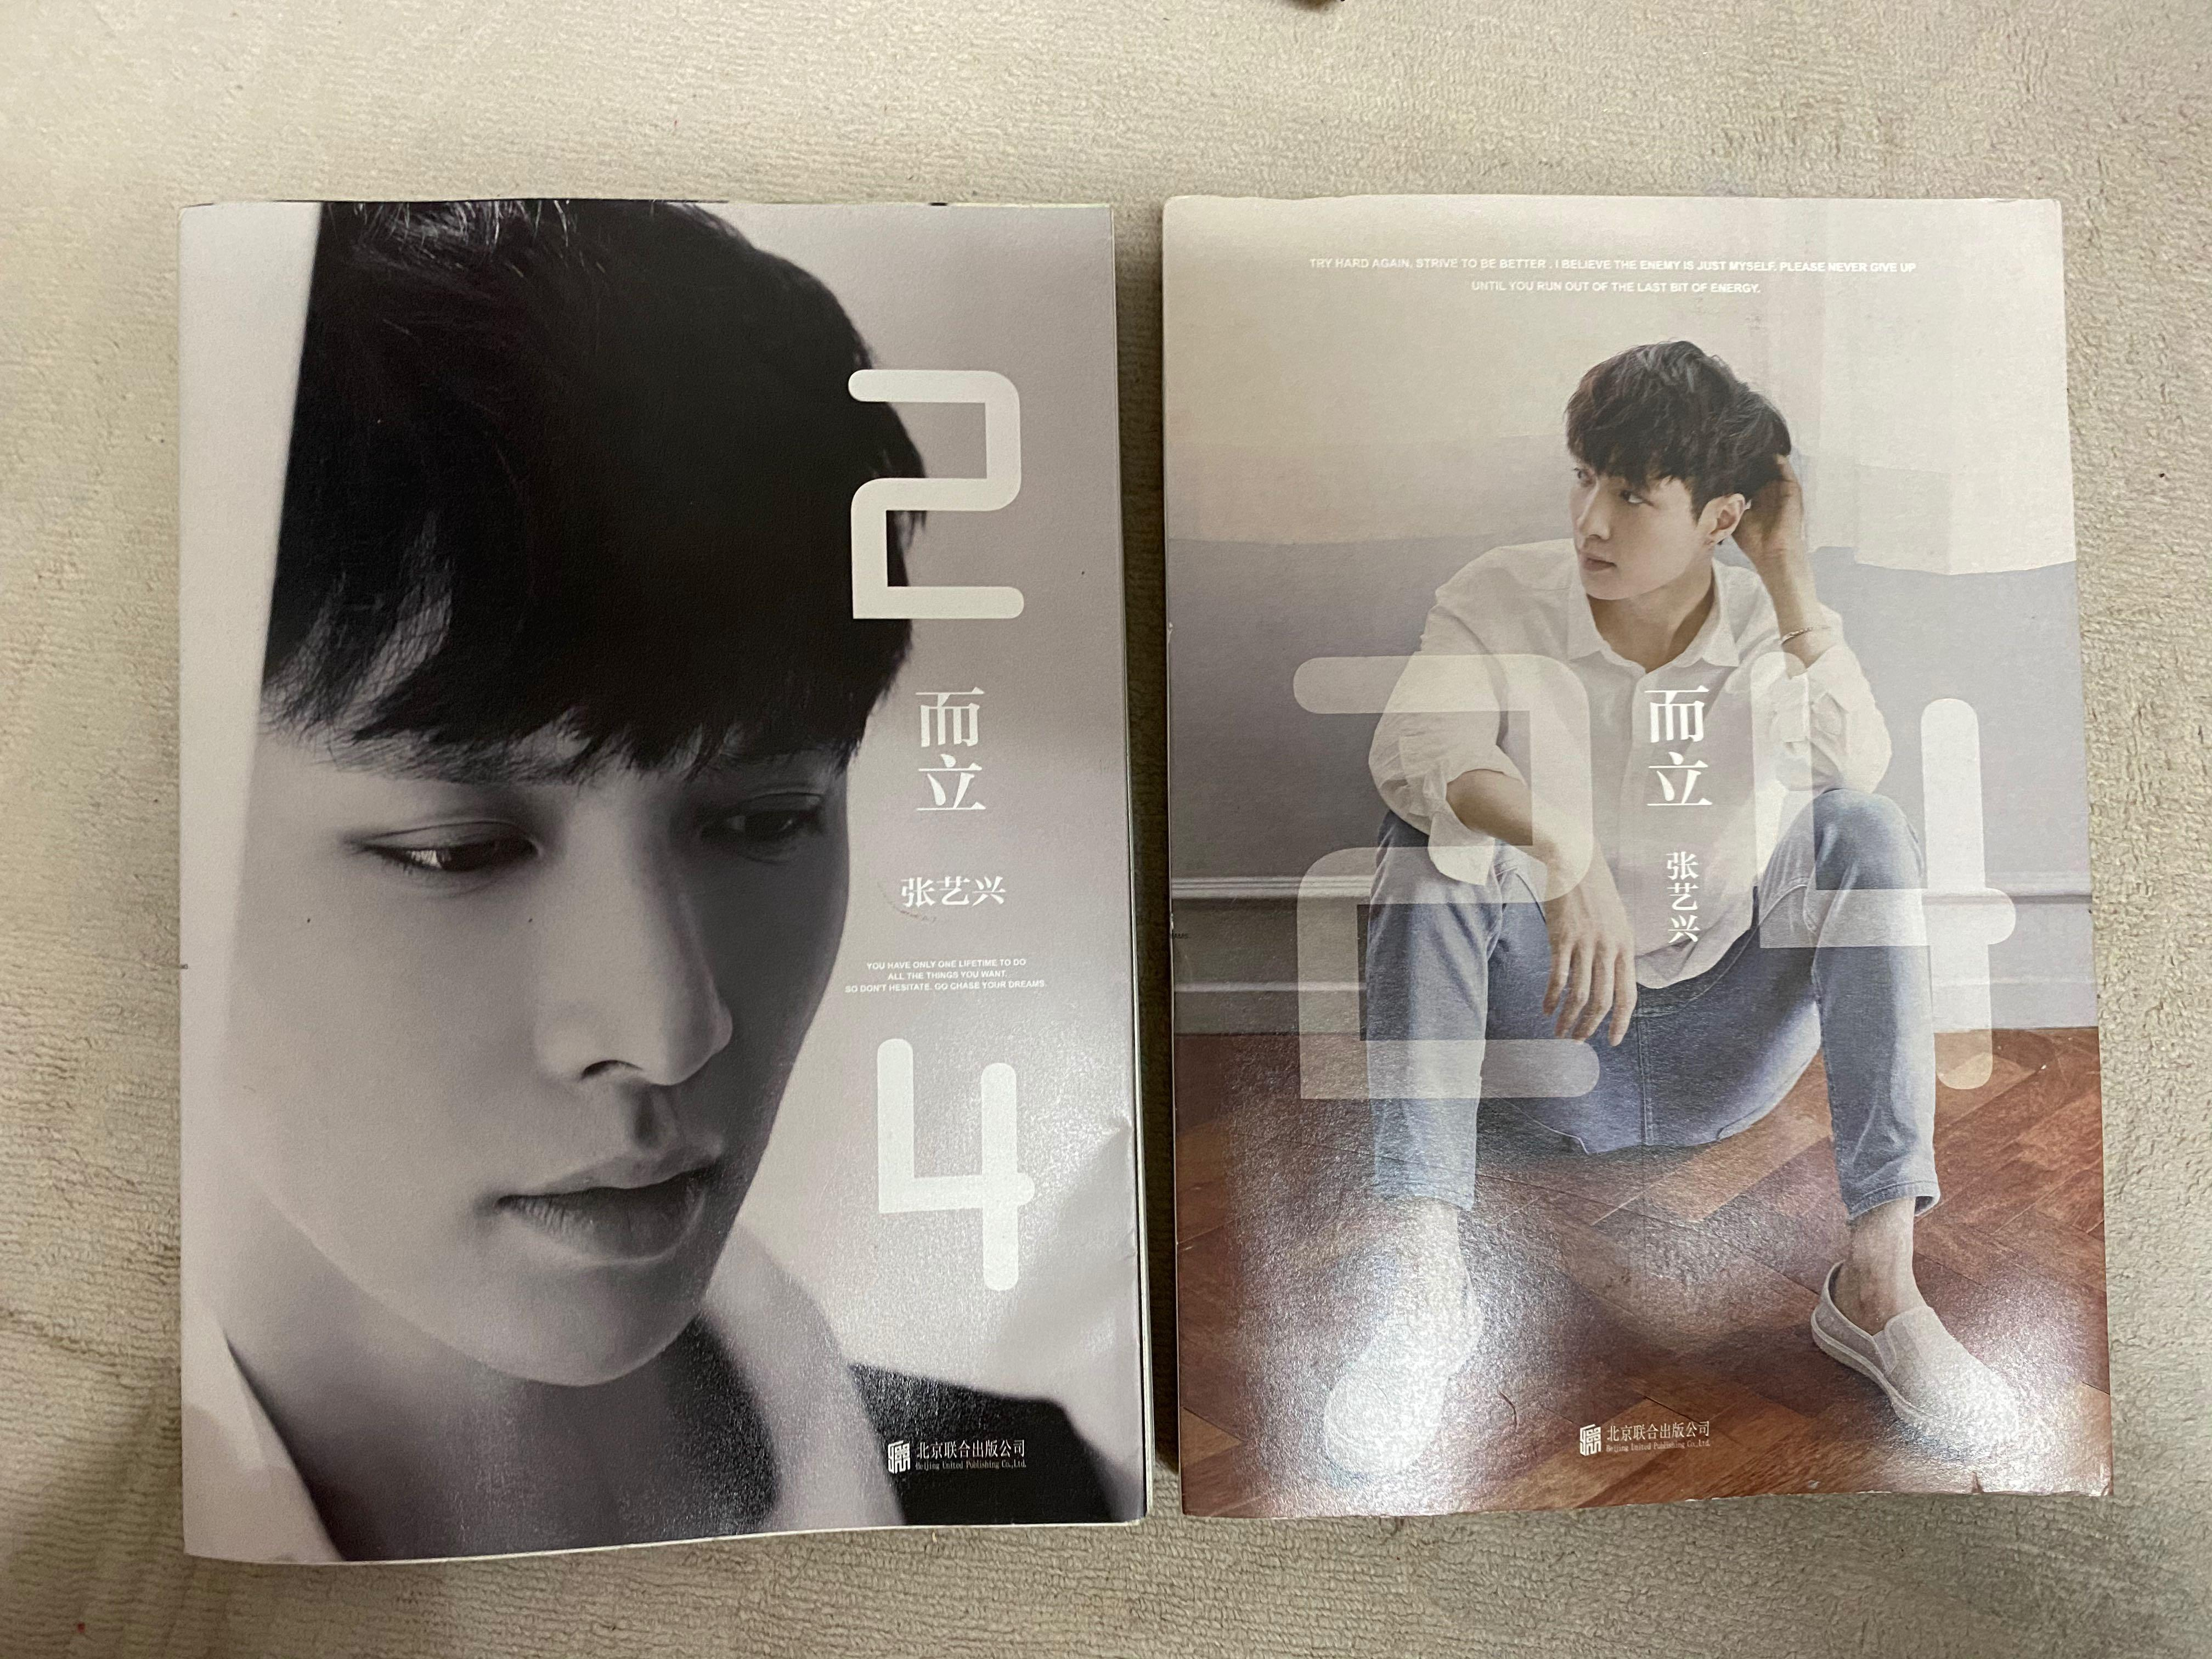 [RTC]EXO Lay Autobiography Book Standard Cover & Limited Edition Cover